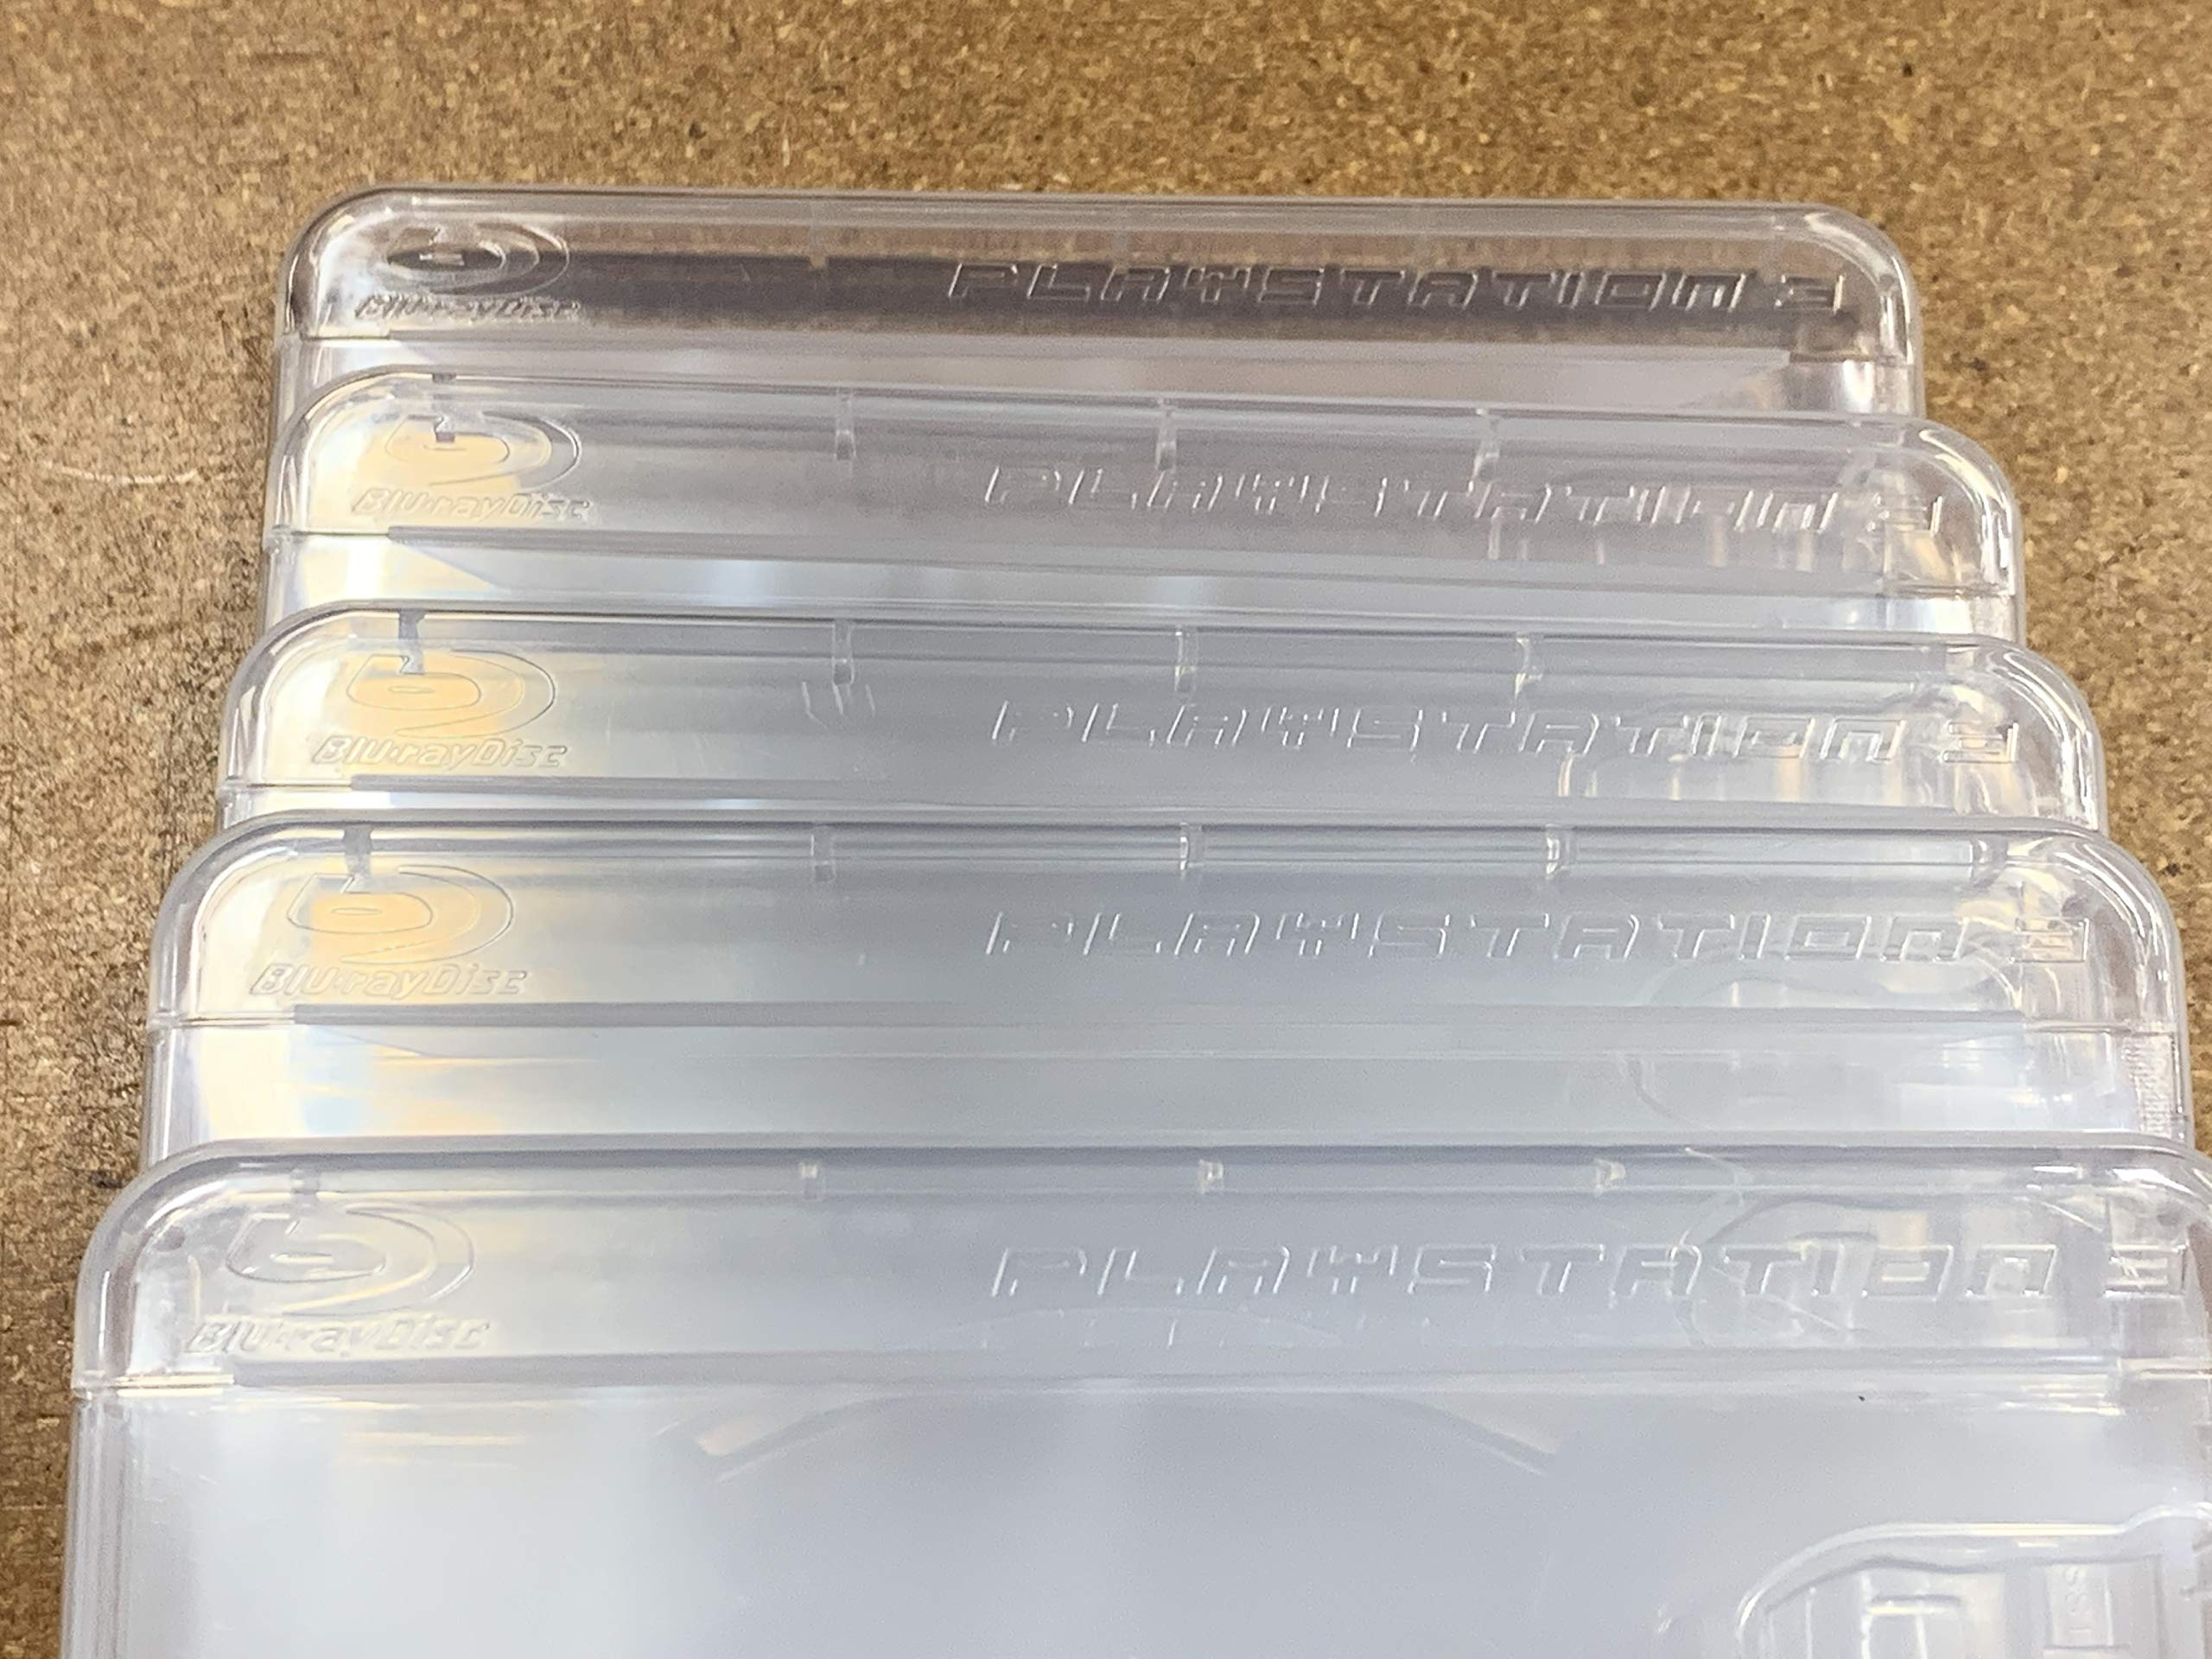 Pack of Five (5) Original Playstation 3 Replacement Game Cases w/ PS3 Logos